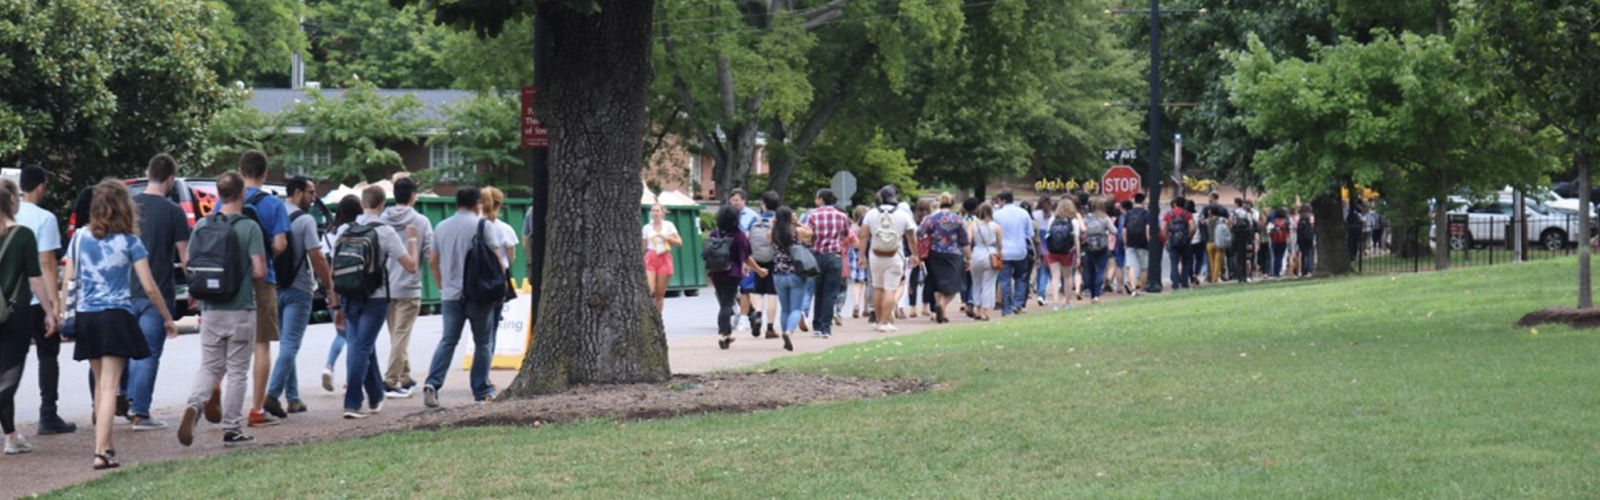 New graduate school students walking from the Student Life Center to Alumni Hall at orientation.